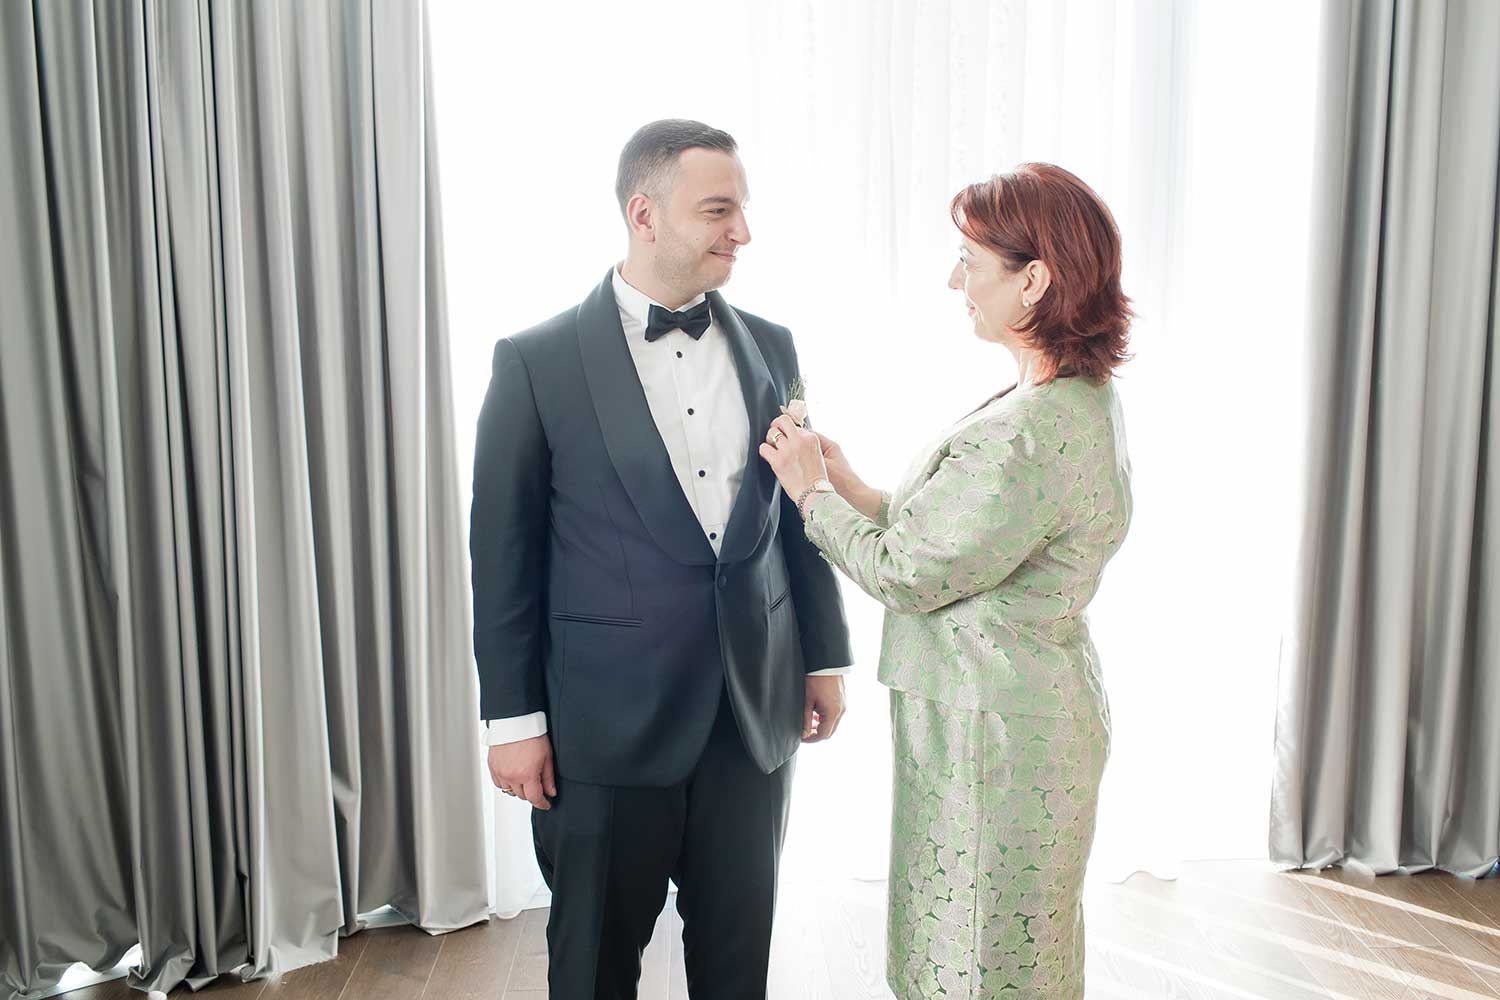 The groom and his mother getting ready